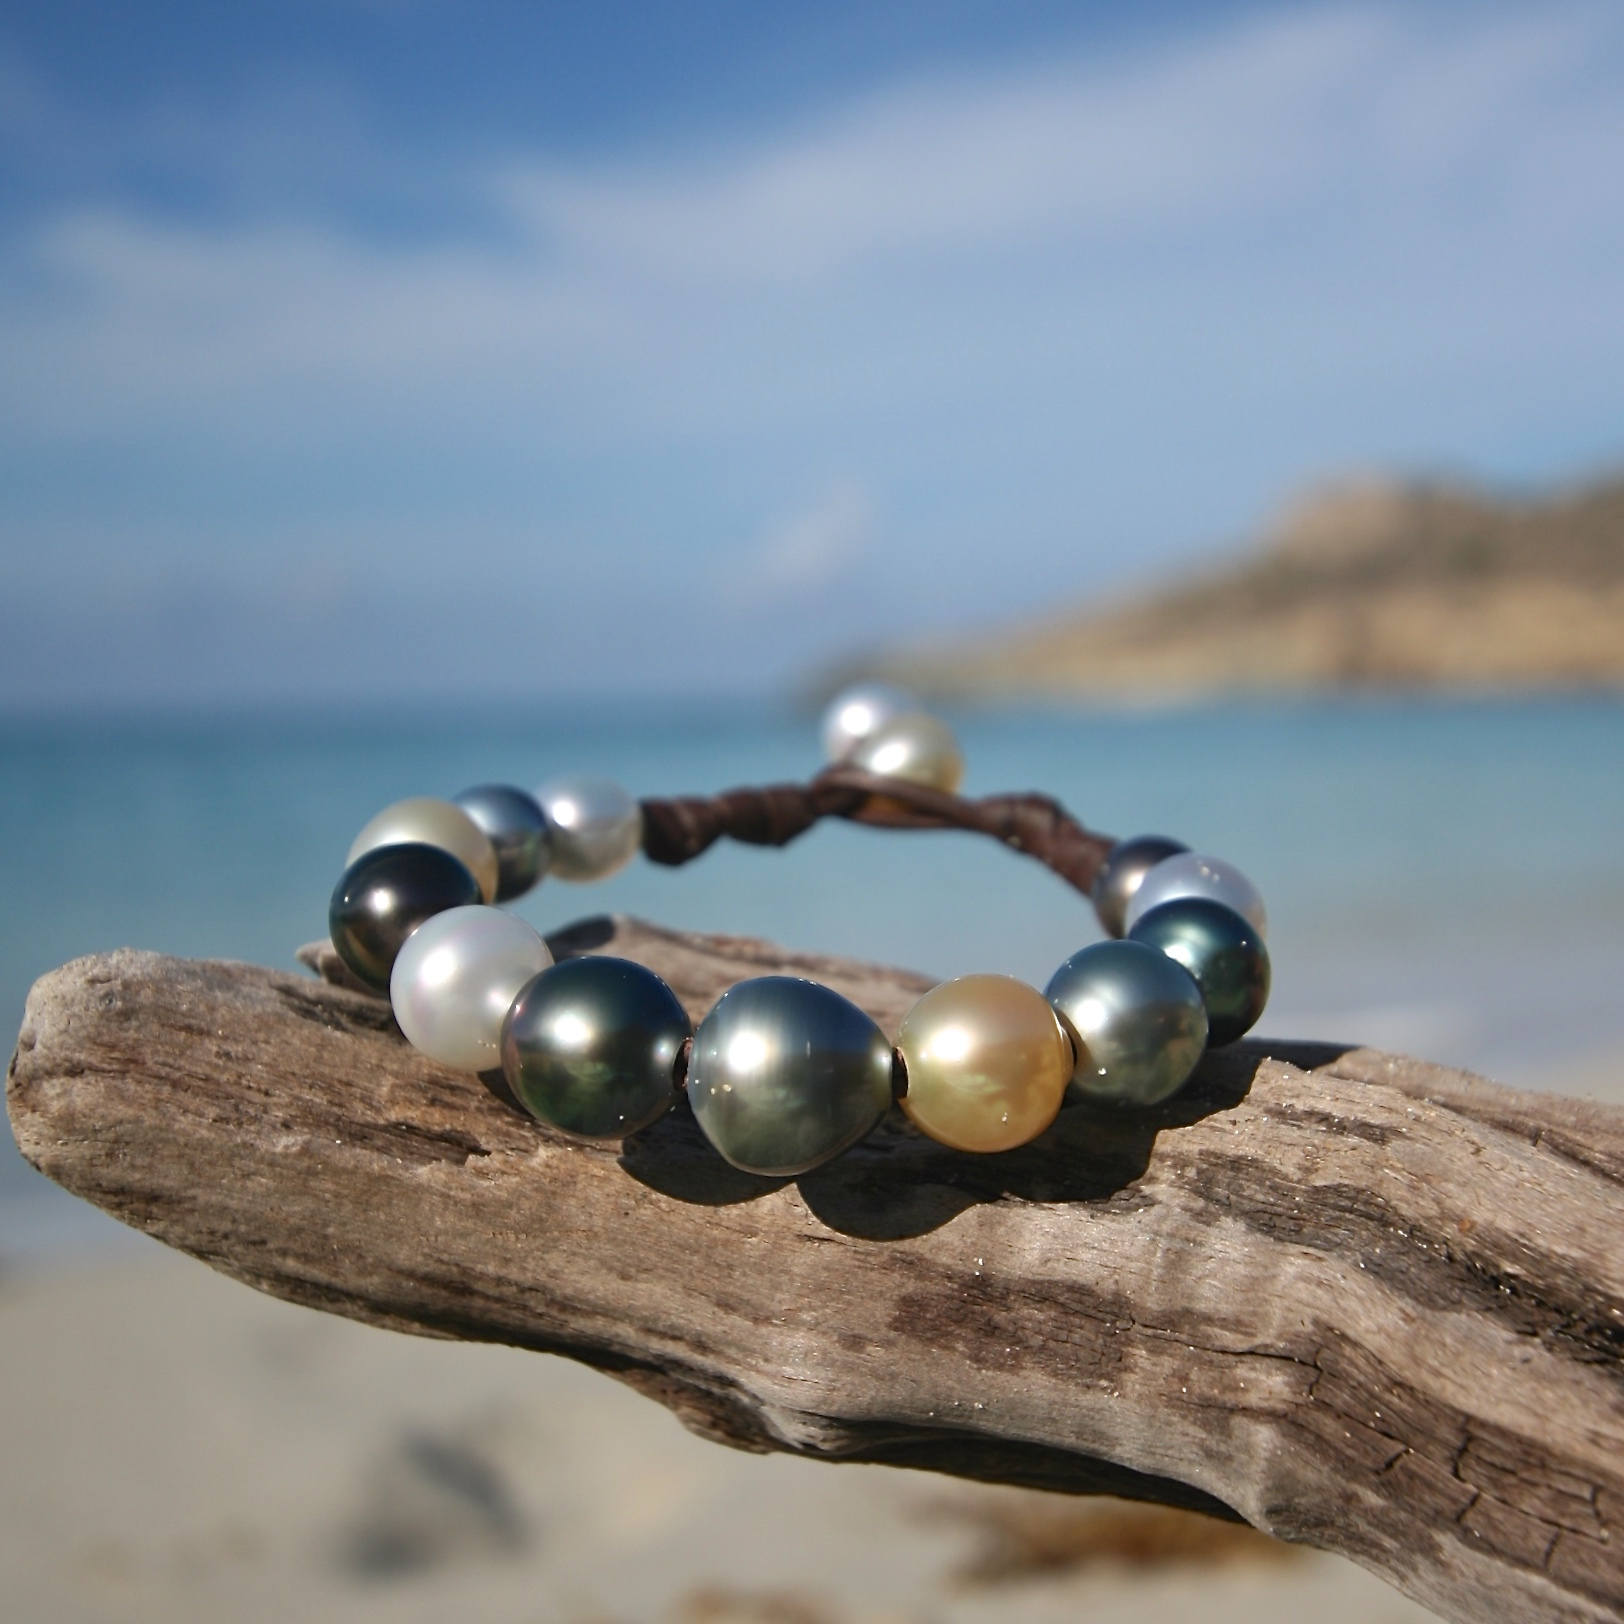 Multicolor gradient of fine cultured pearls bracelet strung on leather from St Barth island, Leather jewelry for woman, mermaid gift !